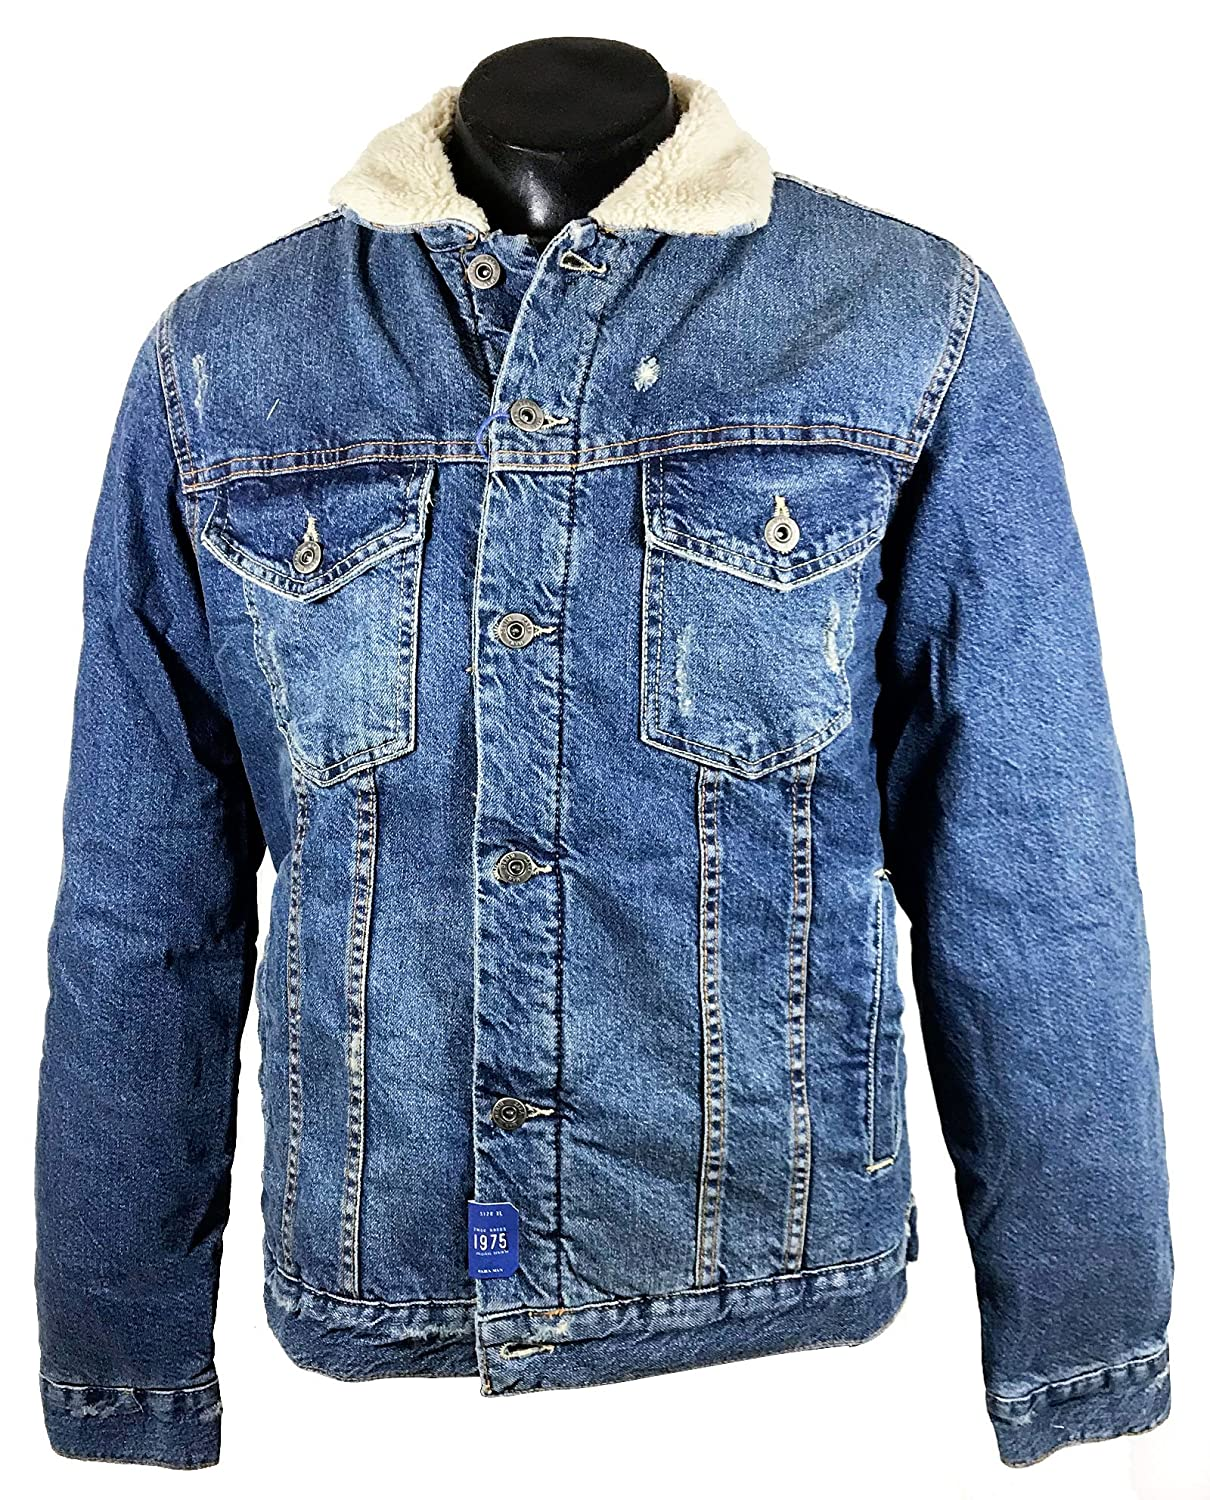 Zara Men Denim and Sheepskin Jacket 5575/390 at Amazon Mens ...